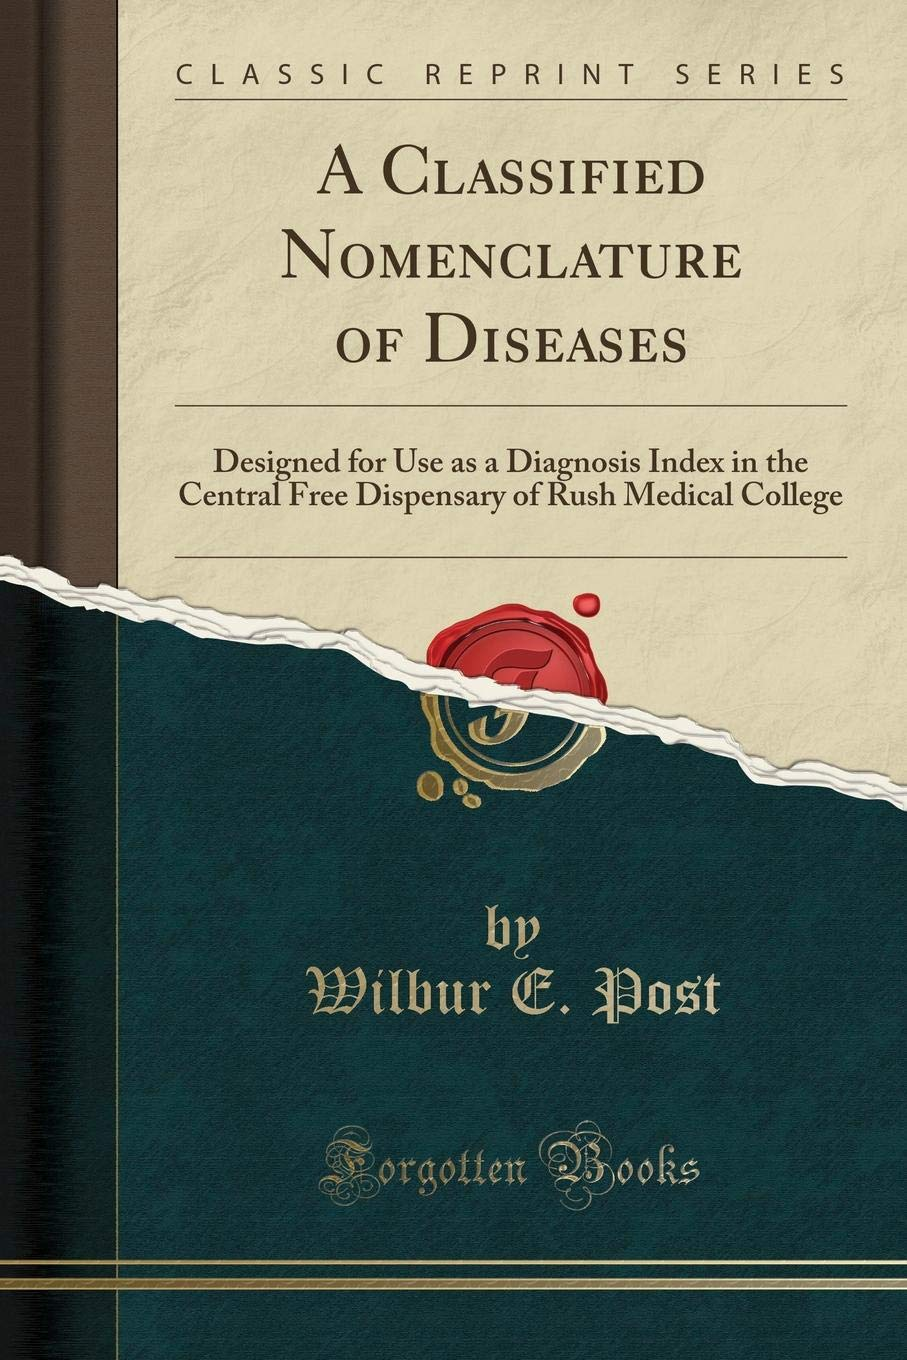 Download A Classified Nomenclature of Diseases: Designed for Use as a Diagnosis Index in the Central Free Dispensary of Rush Medical College (Classic Reprint) PDF